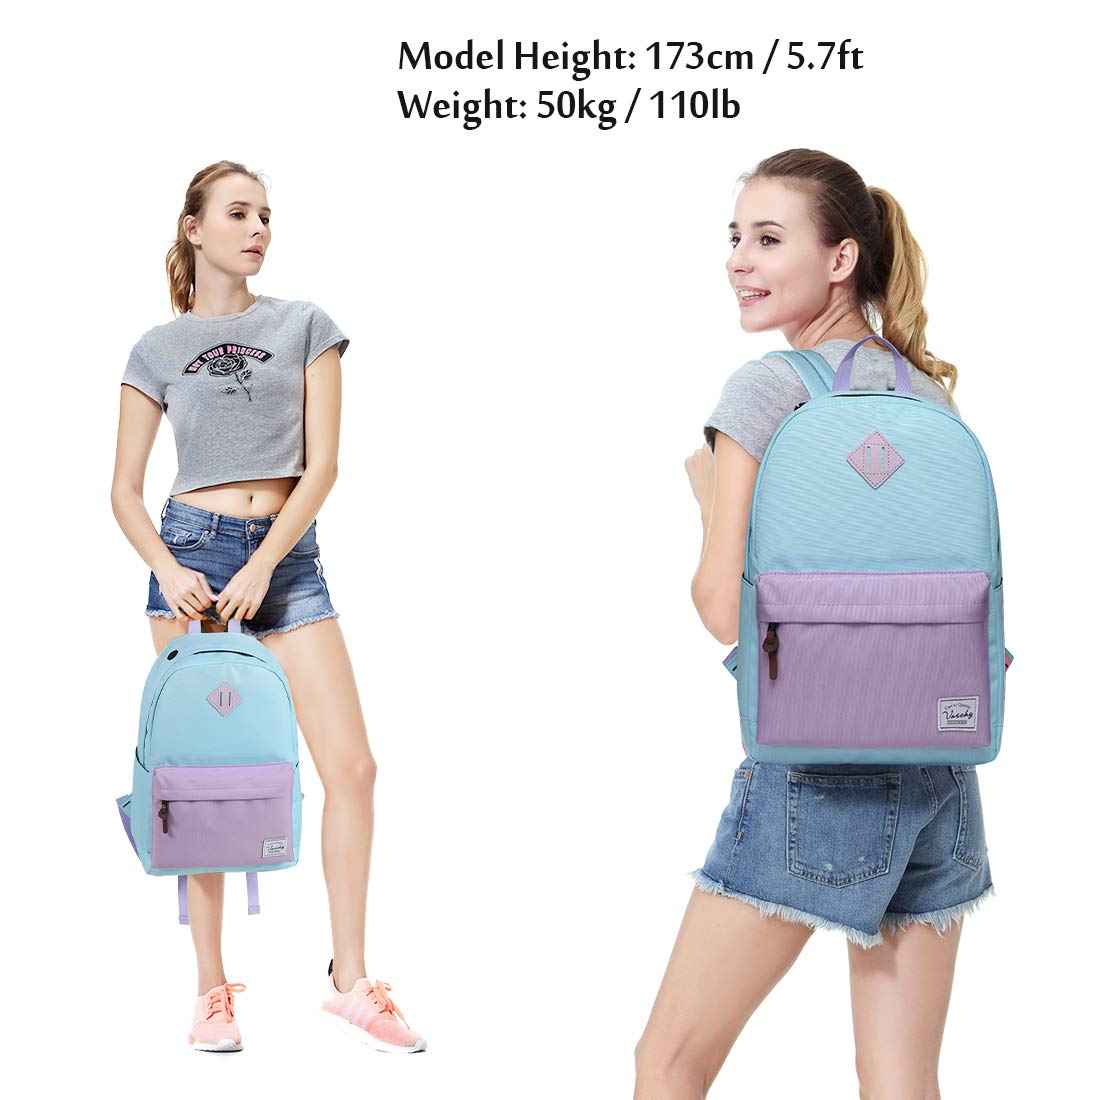 Backpack for Teen Girls, Vaschy Classic Water Resistant School College Bookbag Casual Daypack Travel Rucksack with Bottle Pockets Fits 15Inch Laptop (Sky Blue Purple) by VASCHY (Image #2)